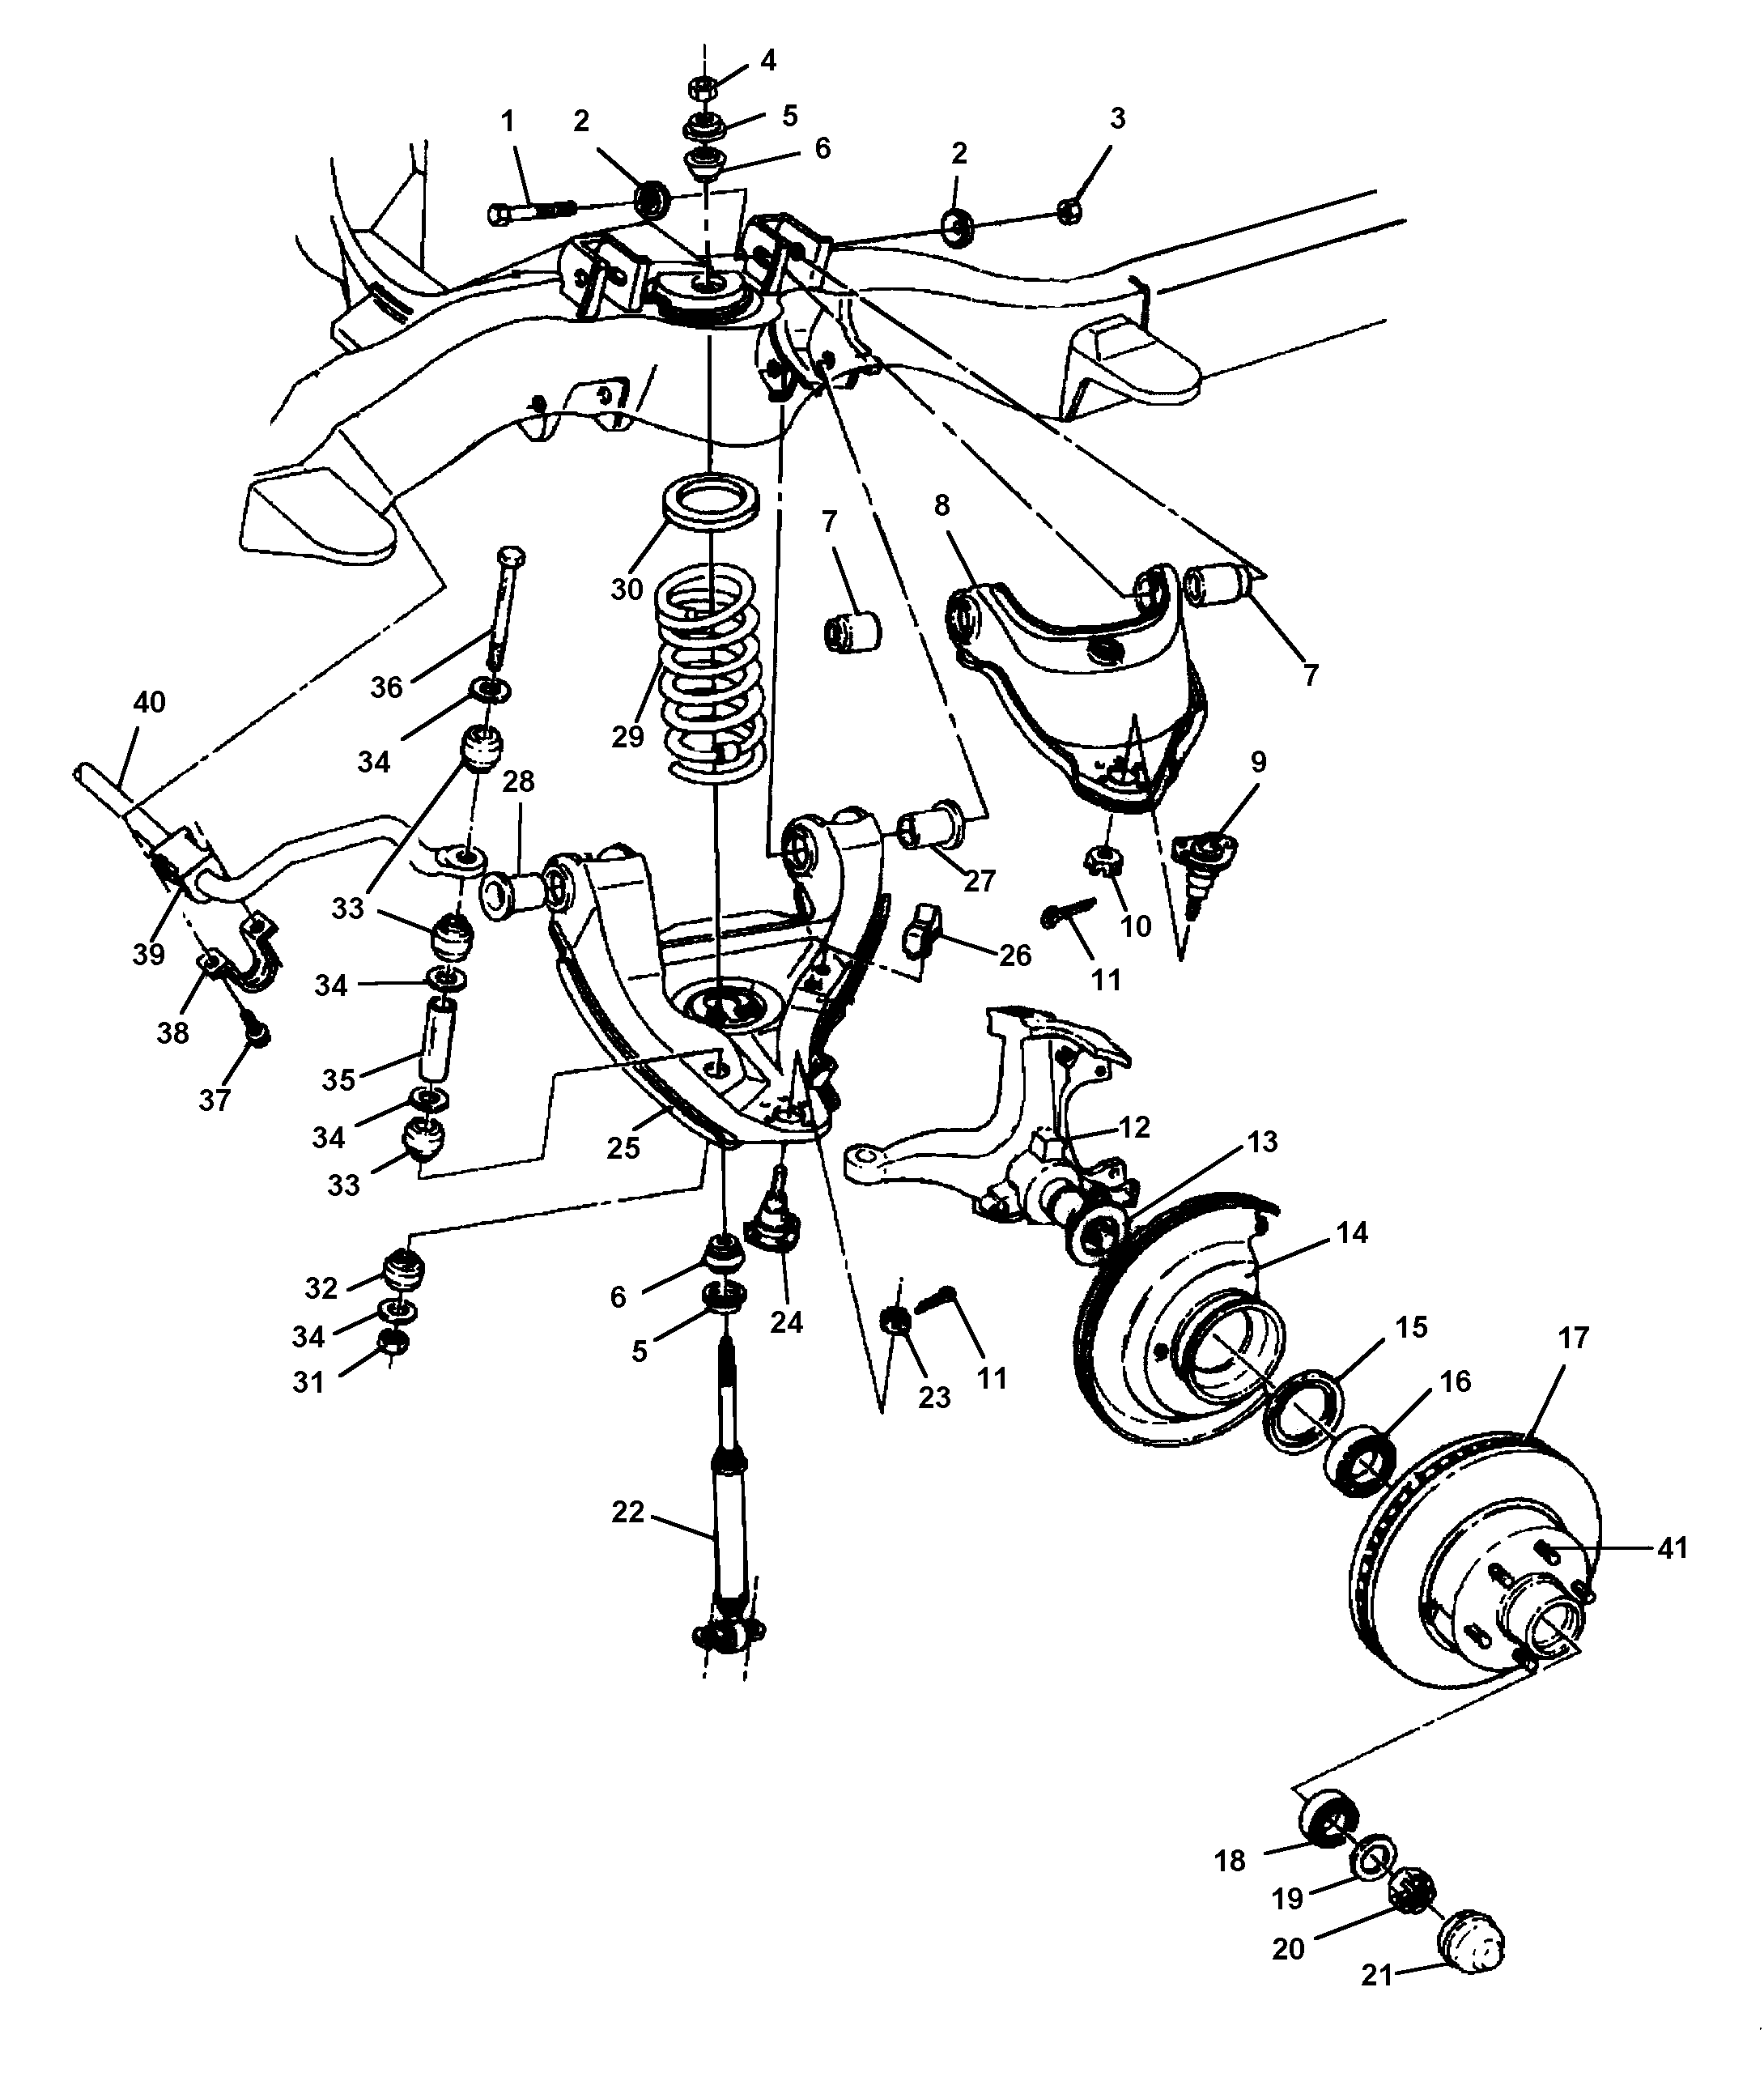 31 Chevy Truck Front Suspension Diagram